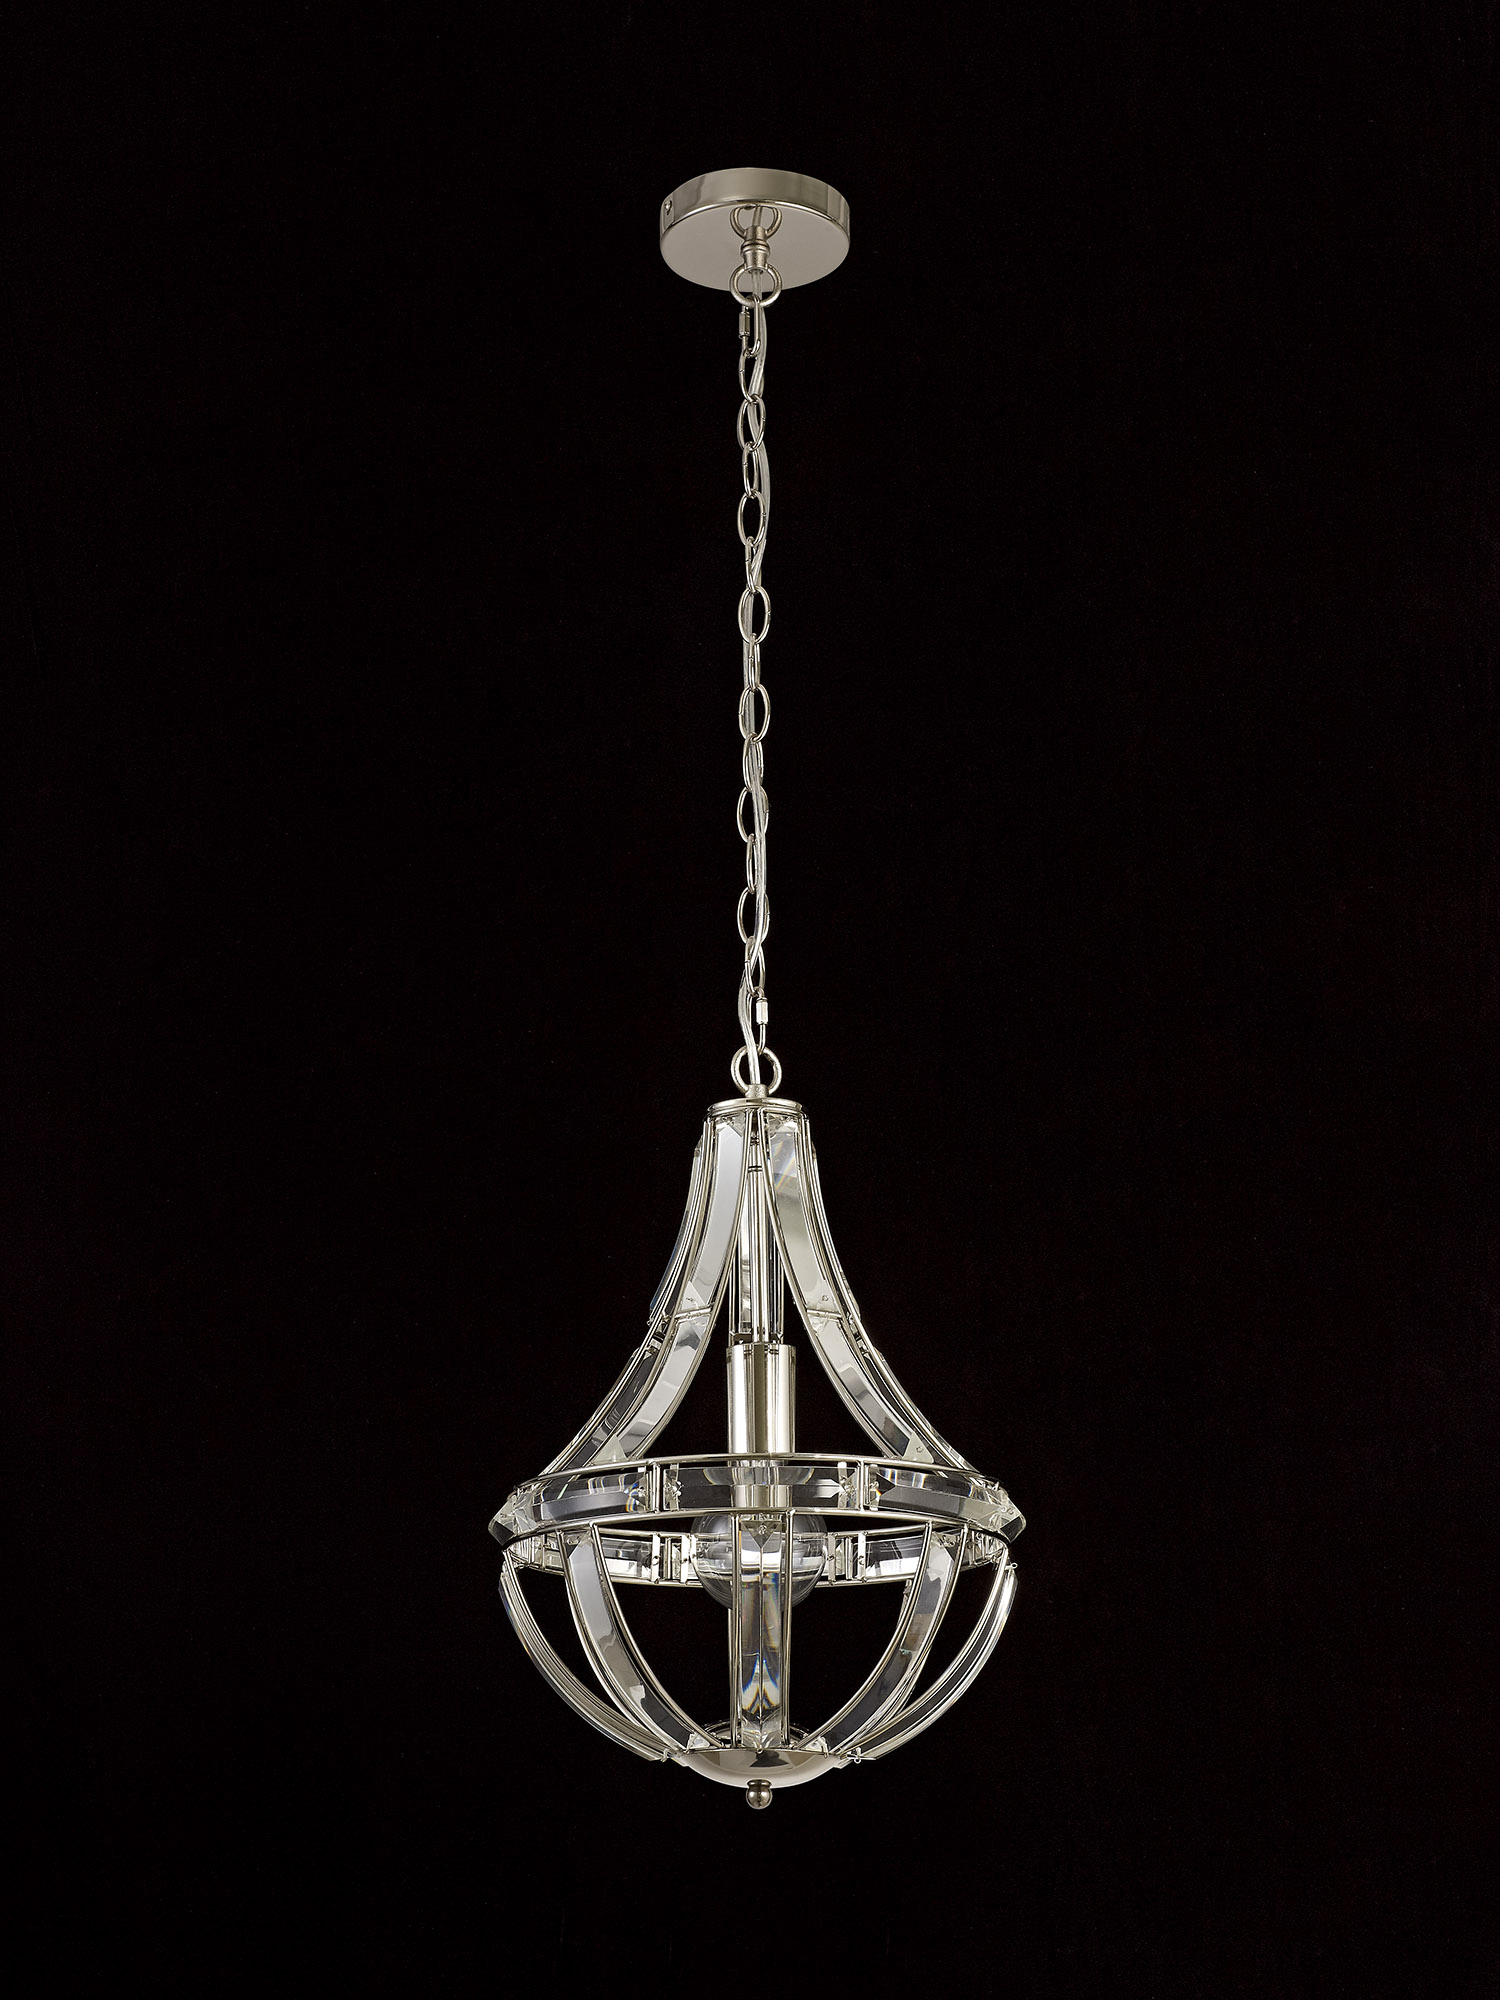 Teardrop Pendant, 1 Light E27, Polished Nickel